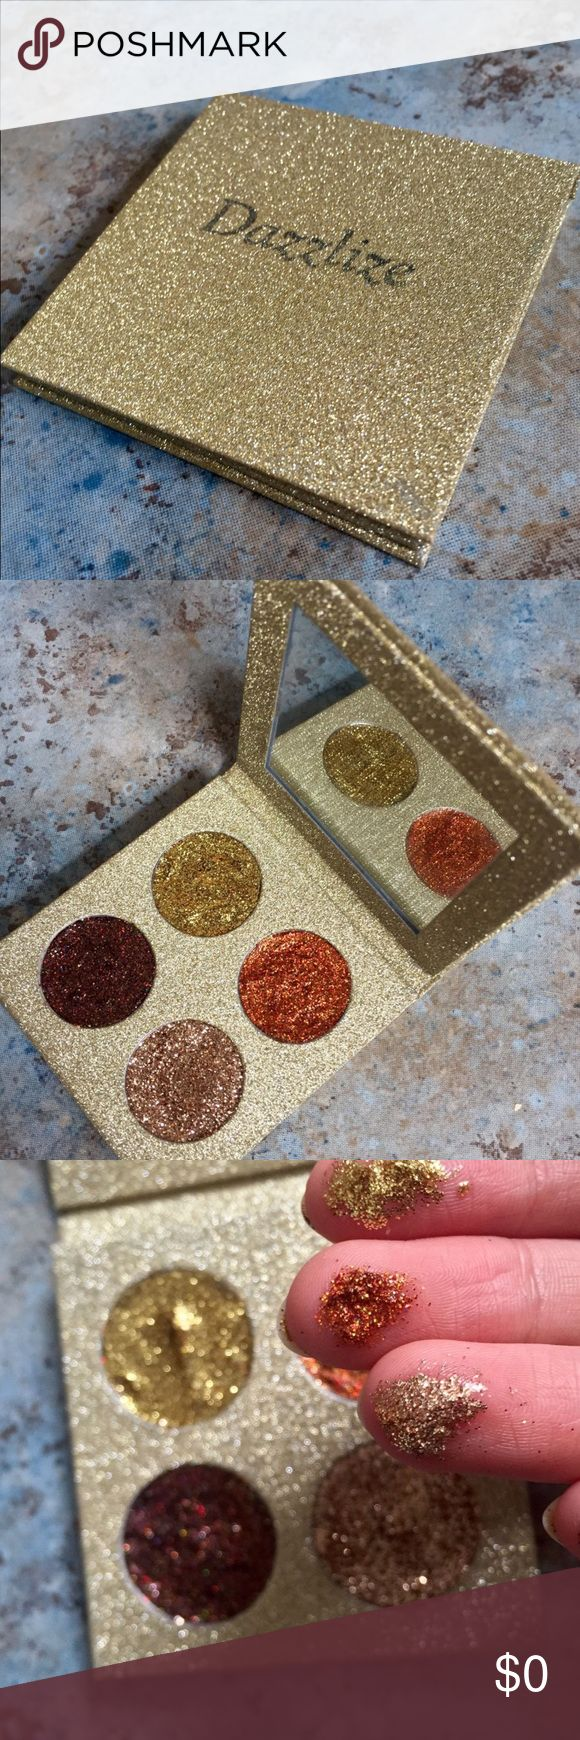 ISO Please Share This Listing Limited Edition Glitter Queen Palette. I want SOOO bad. If anyone is selling this or knows someone who is please let me know! Dazzlize Makeup Eyeshadow